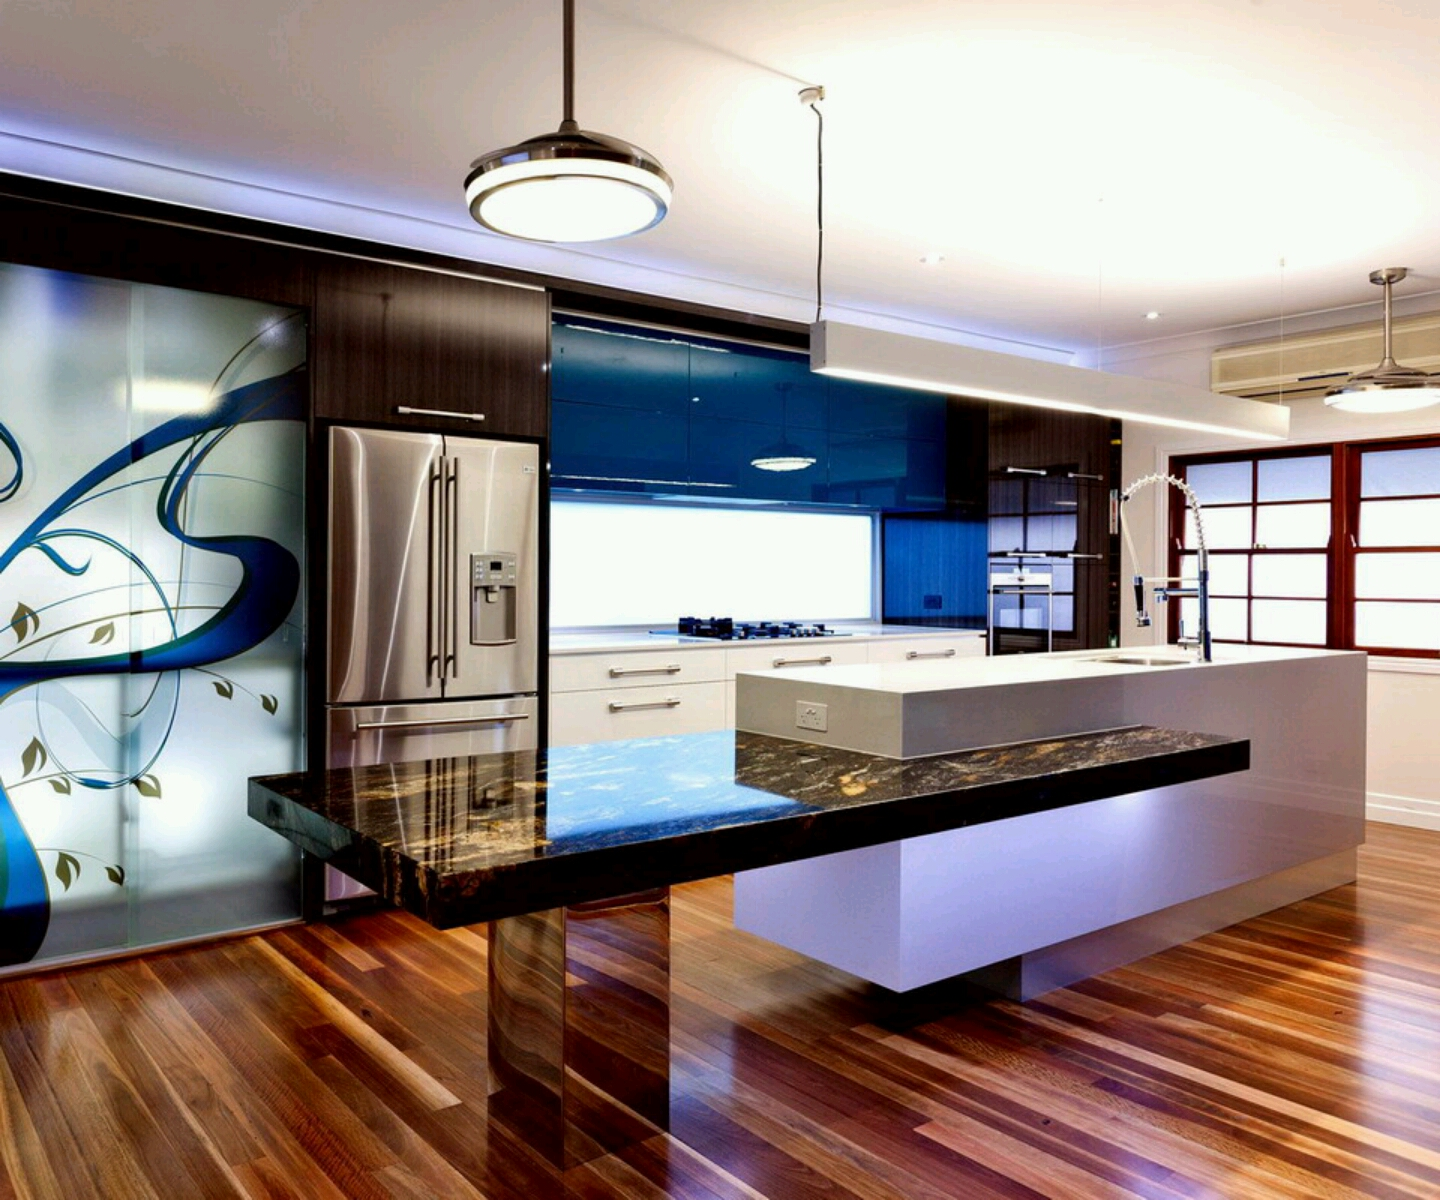 Ultra modern kitchen designs ideas new home designs for Modern kitchen designs with island